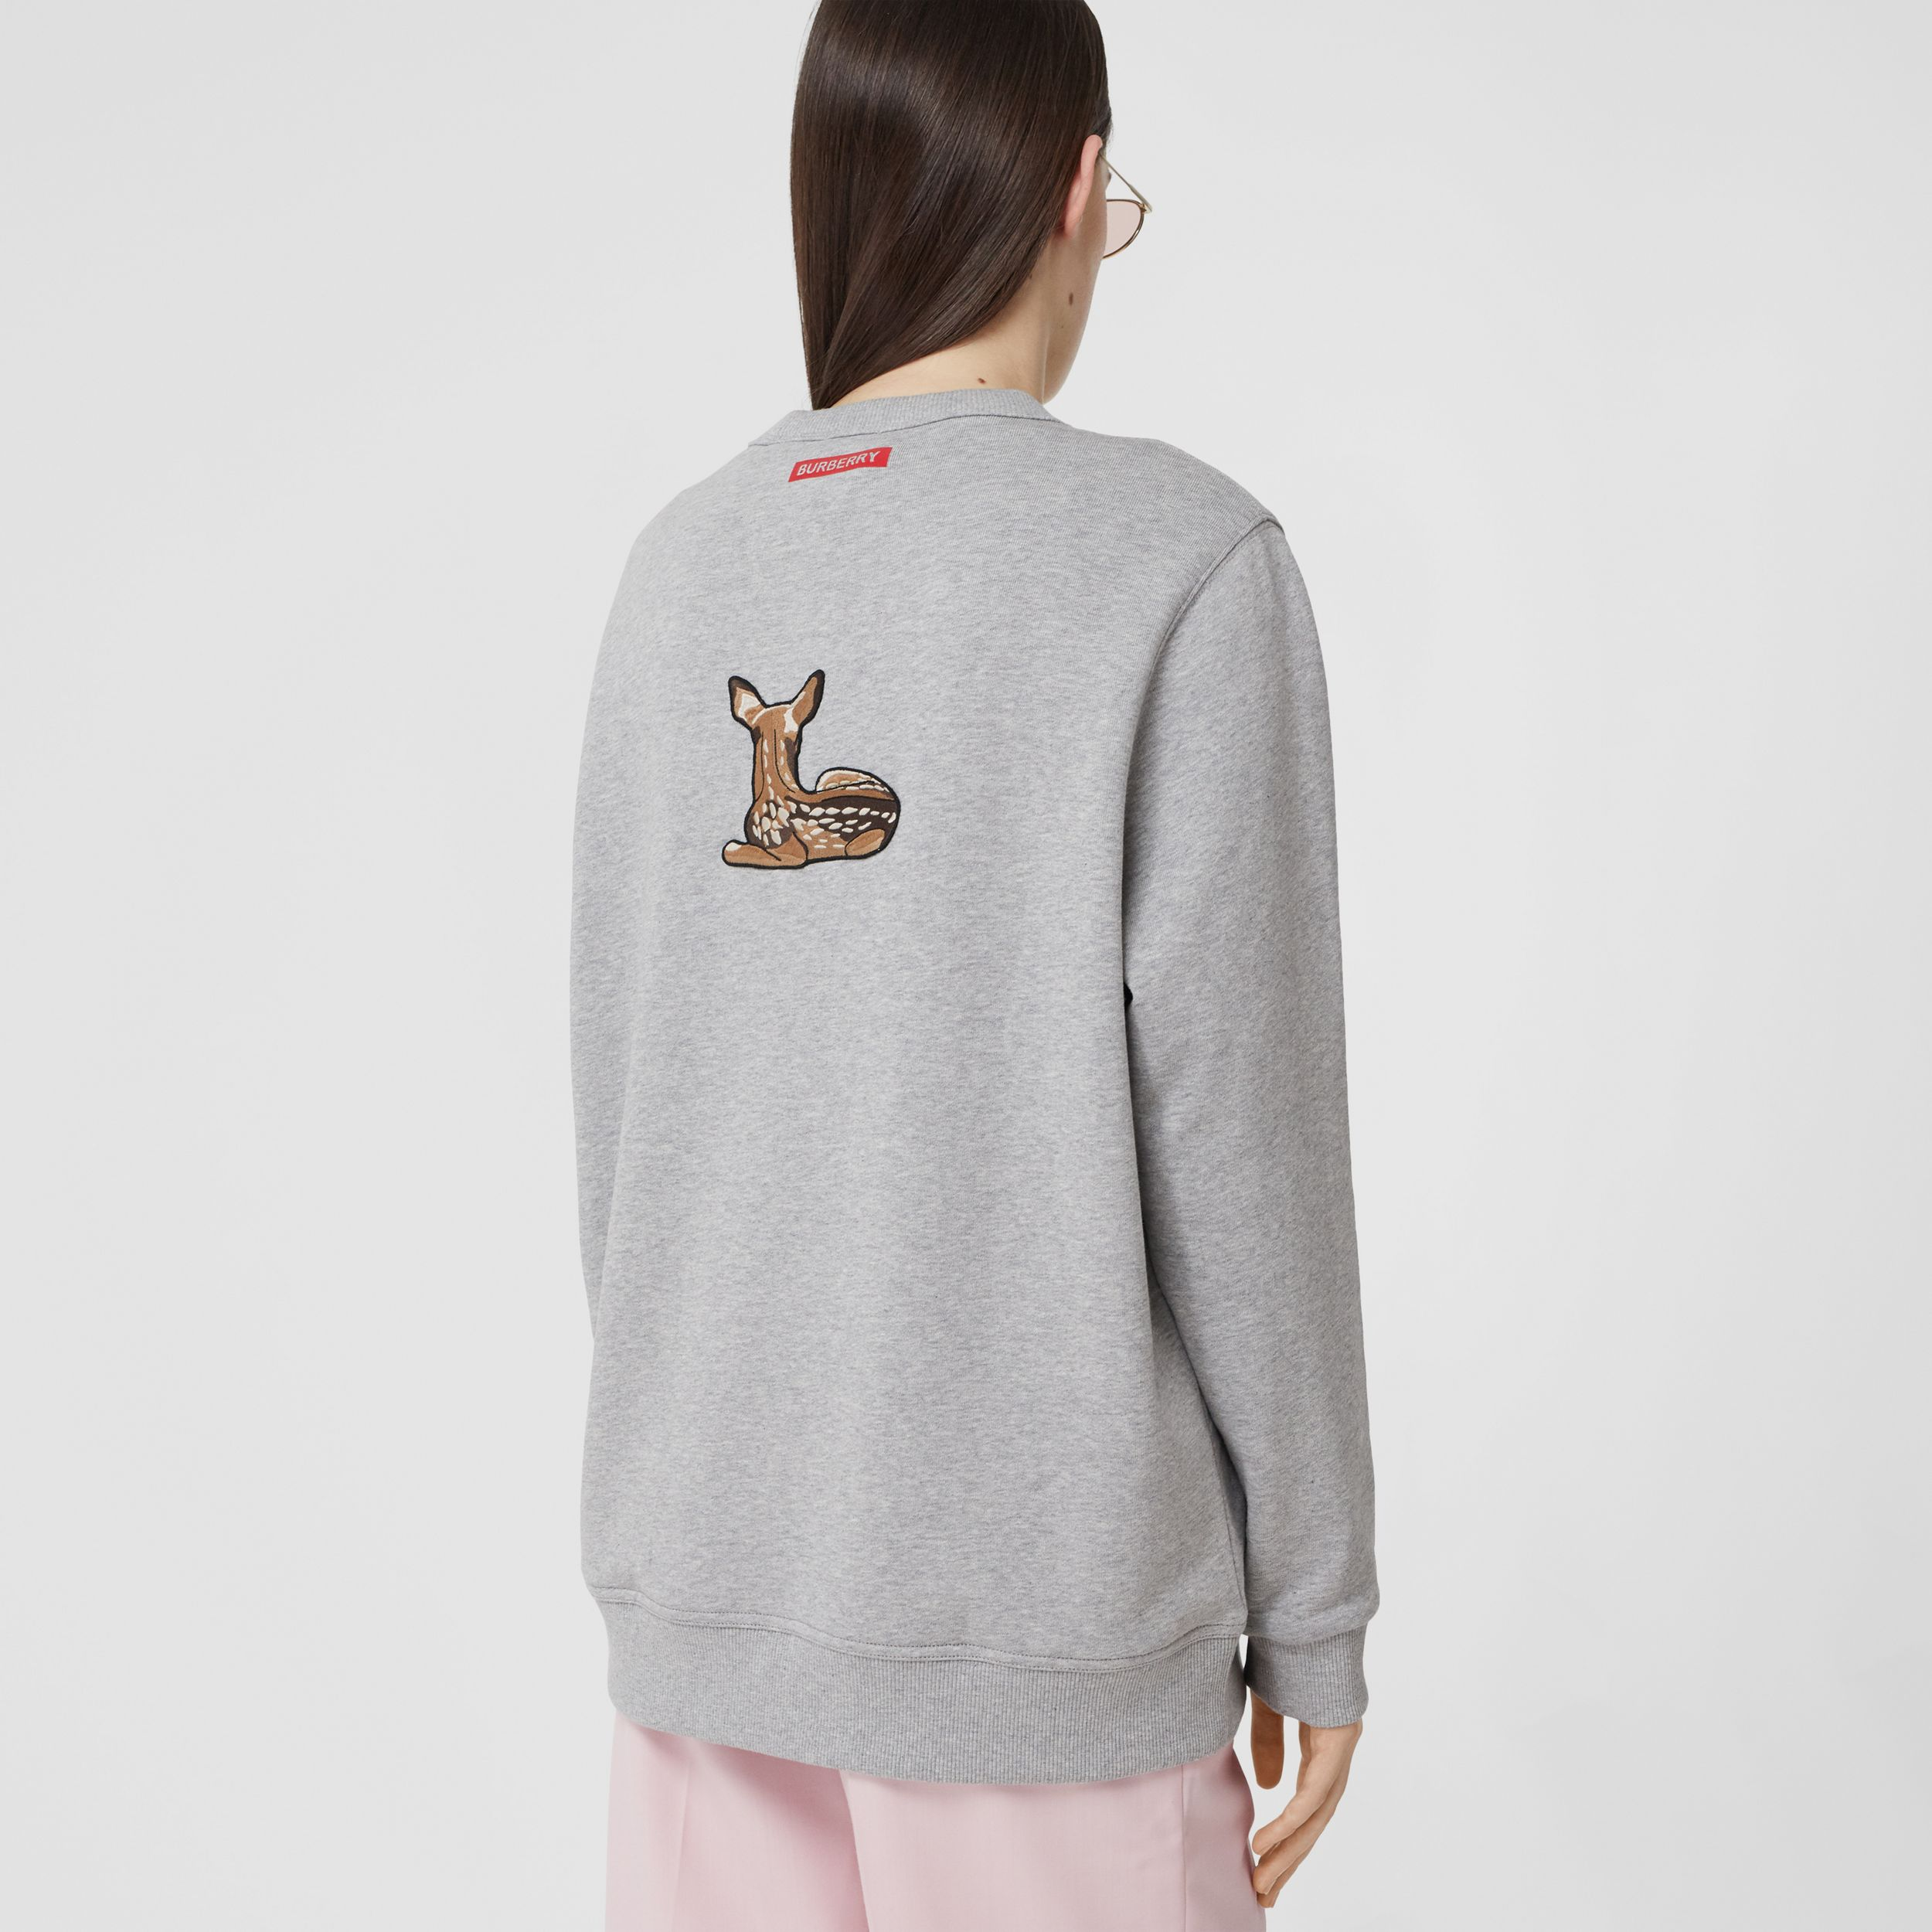 Deer Motif Cotton Oversized Sweatshirt in Pale Grey Melange - Women | Burberry United Kingdom - 3